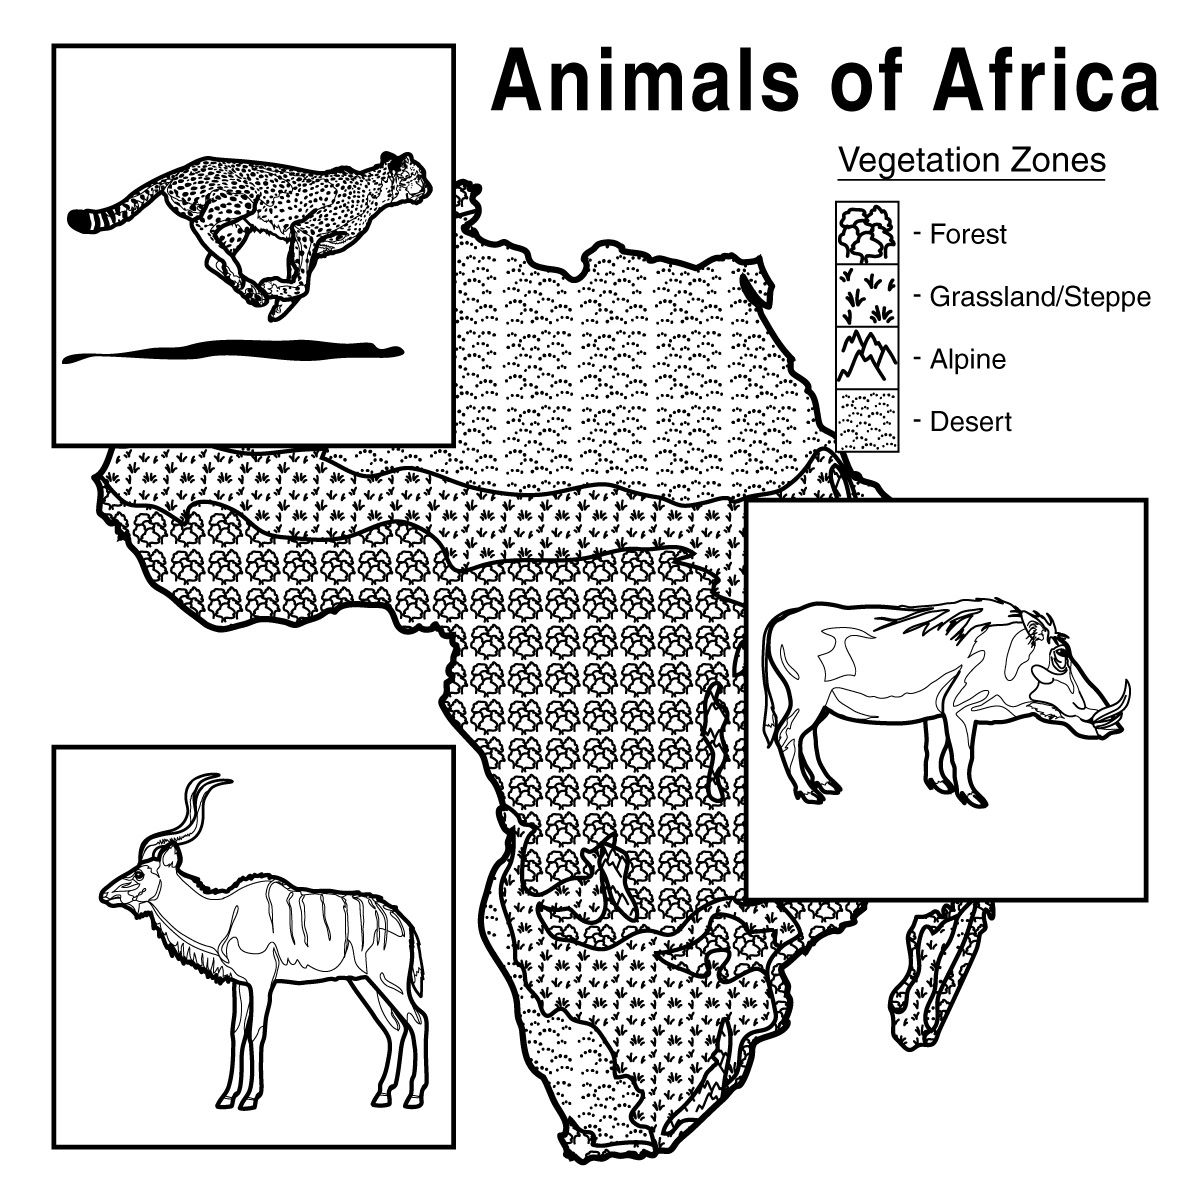 African animals with habitat / vegetation zone chart